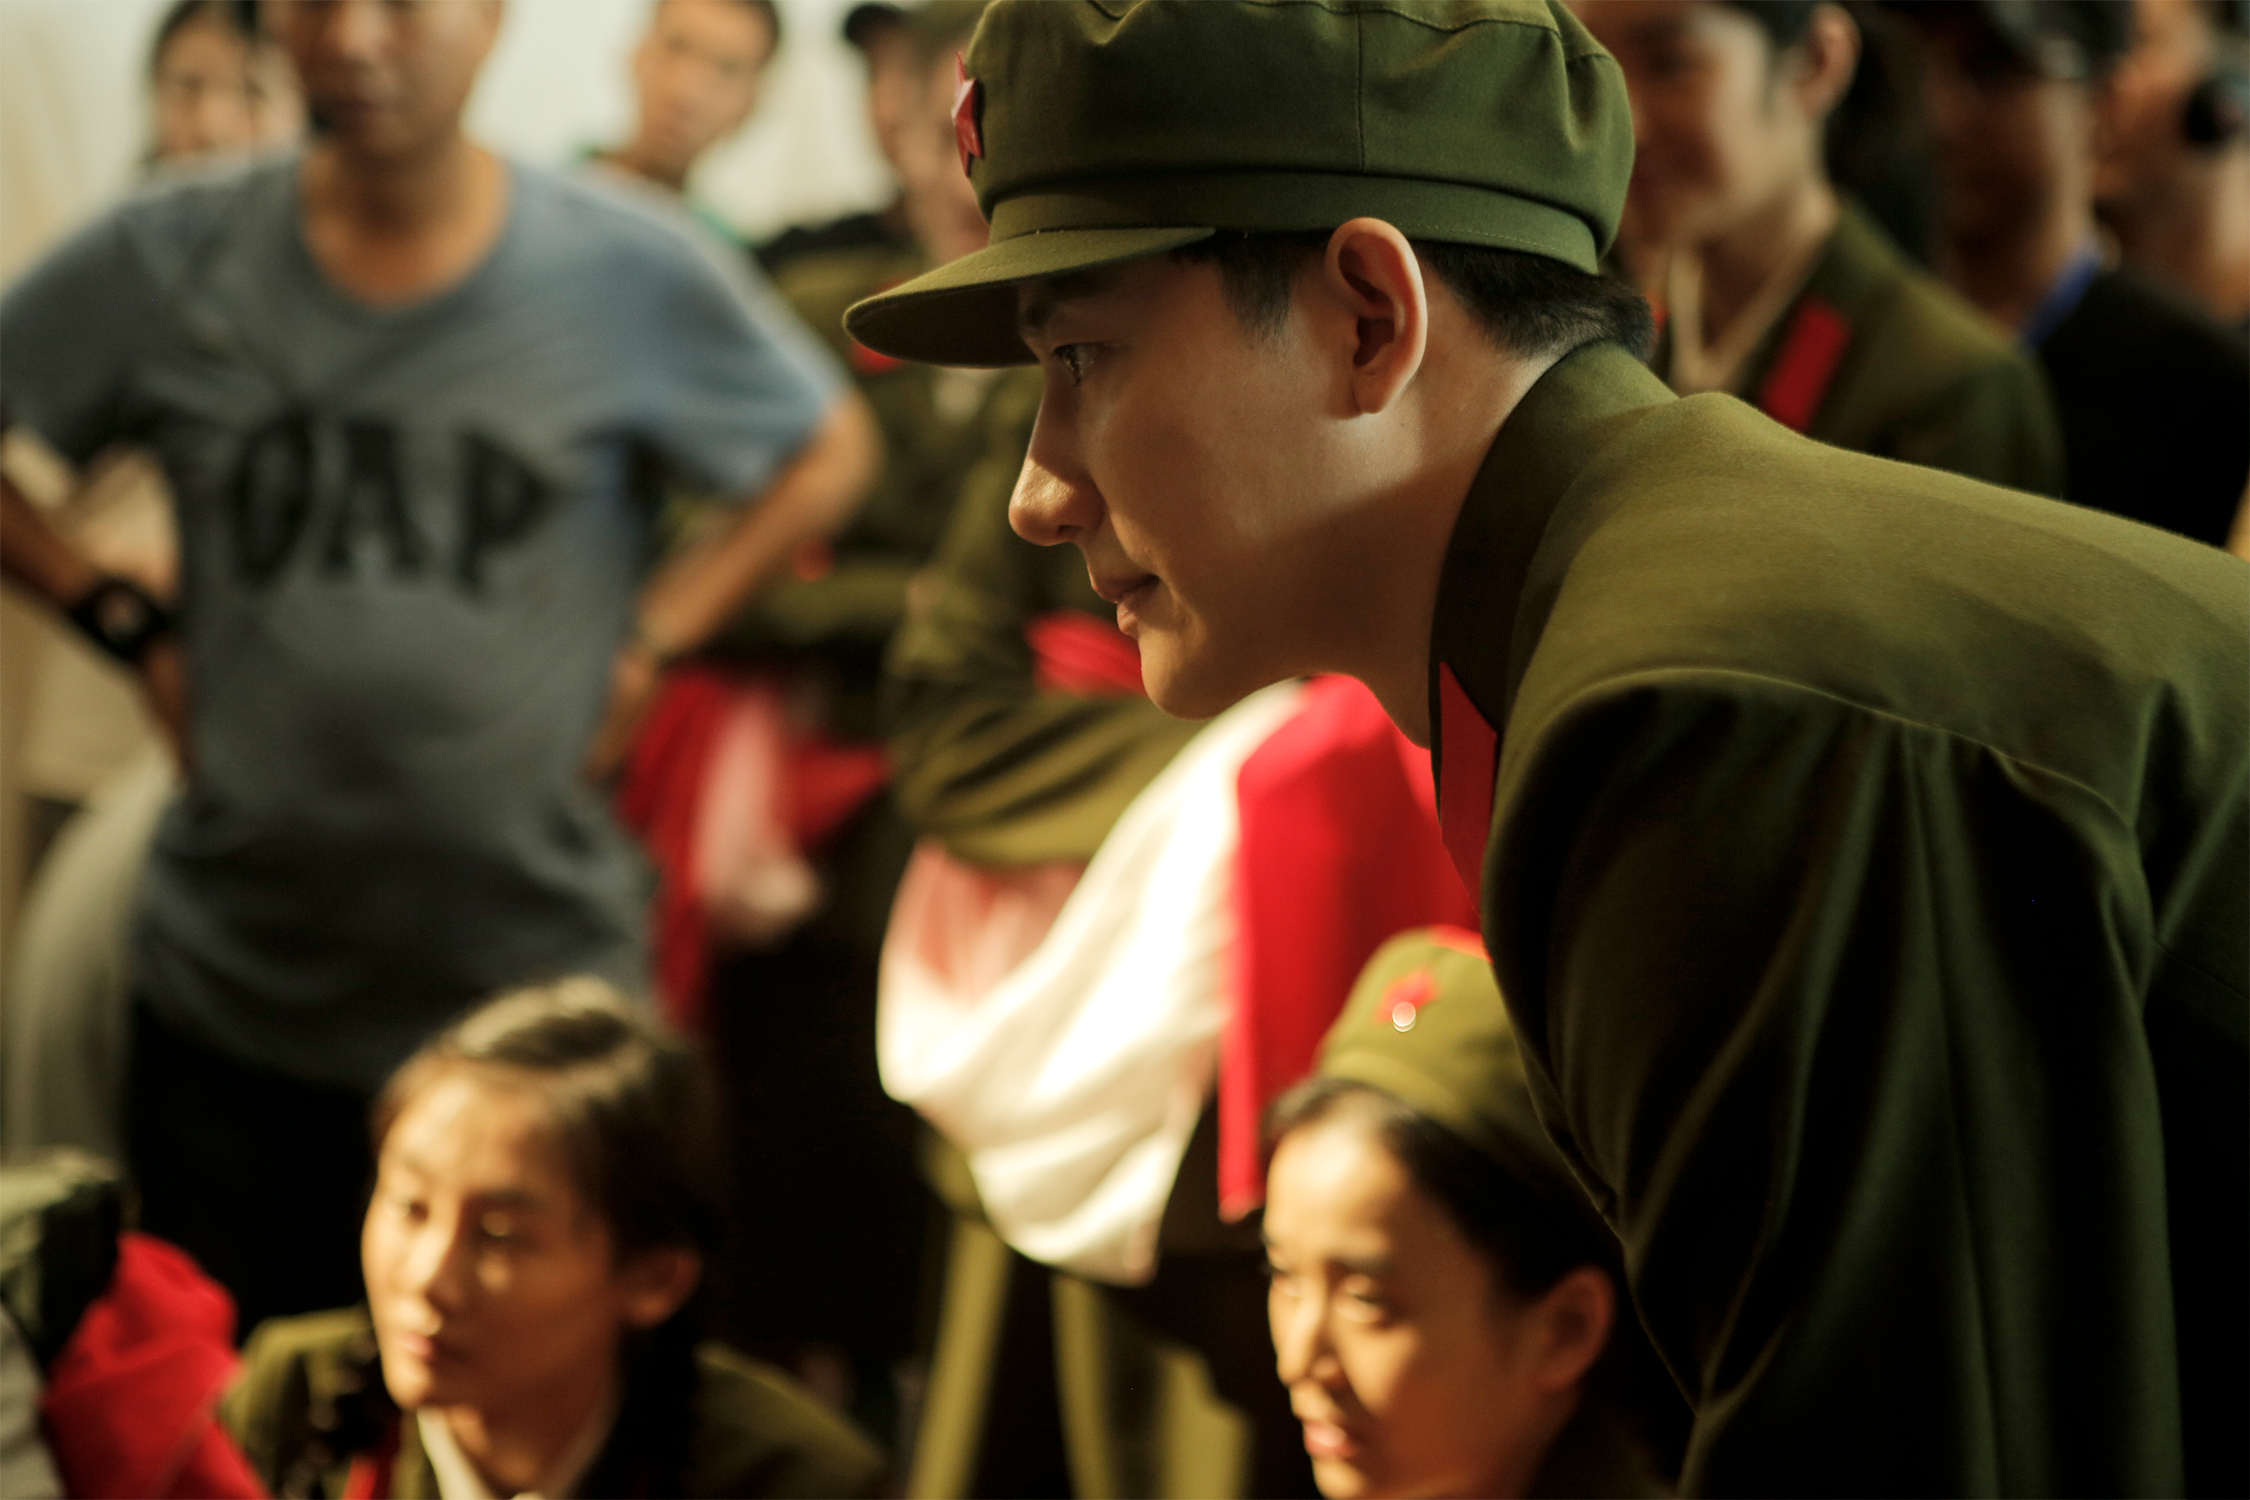 FengXiaogangYOUTH_Still05.jpg